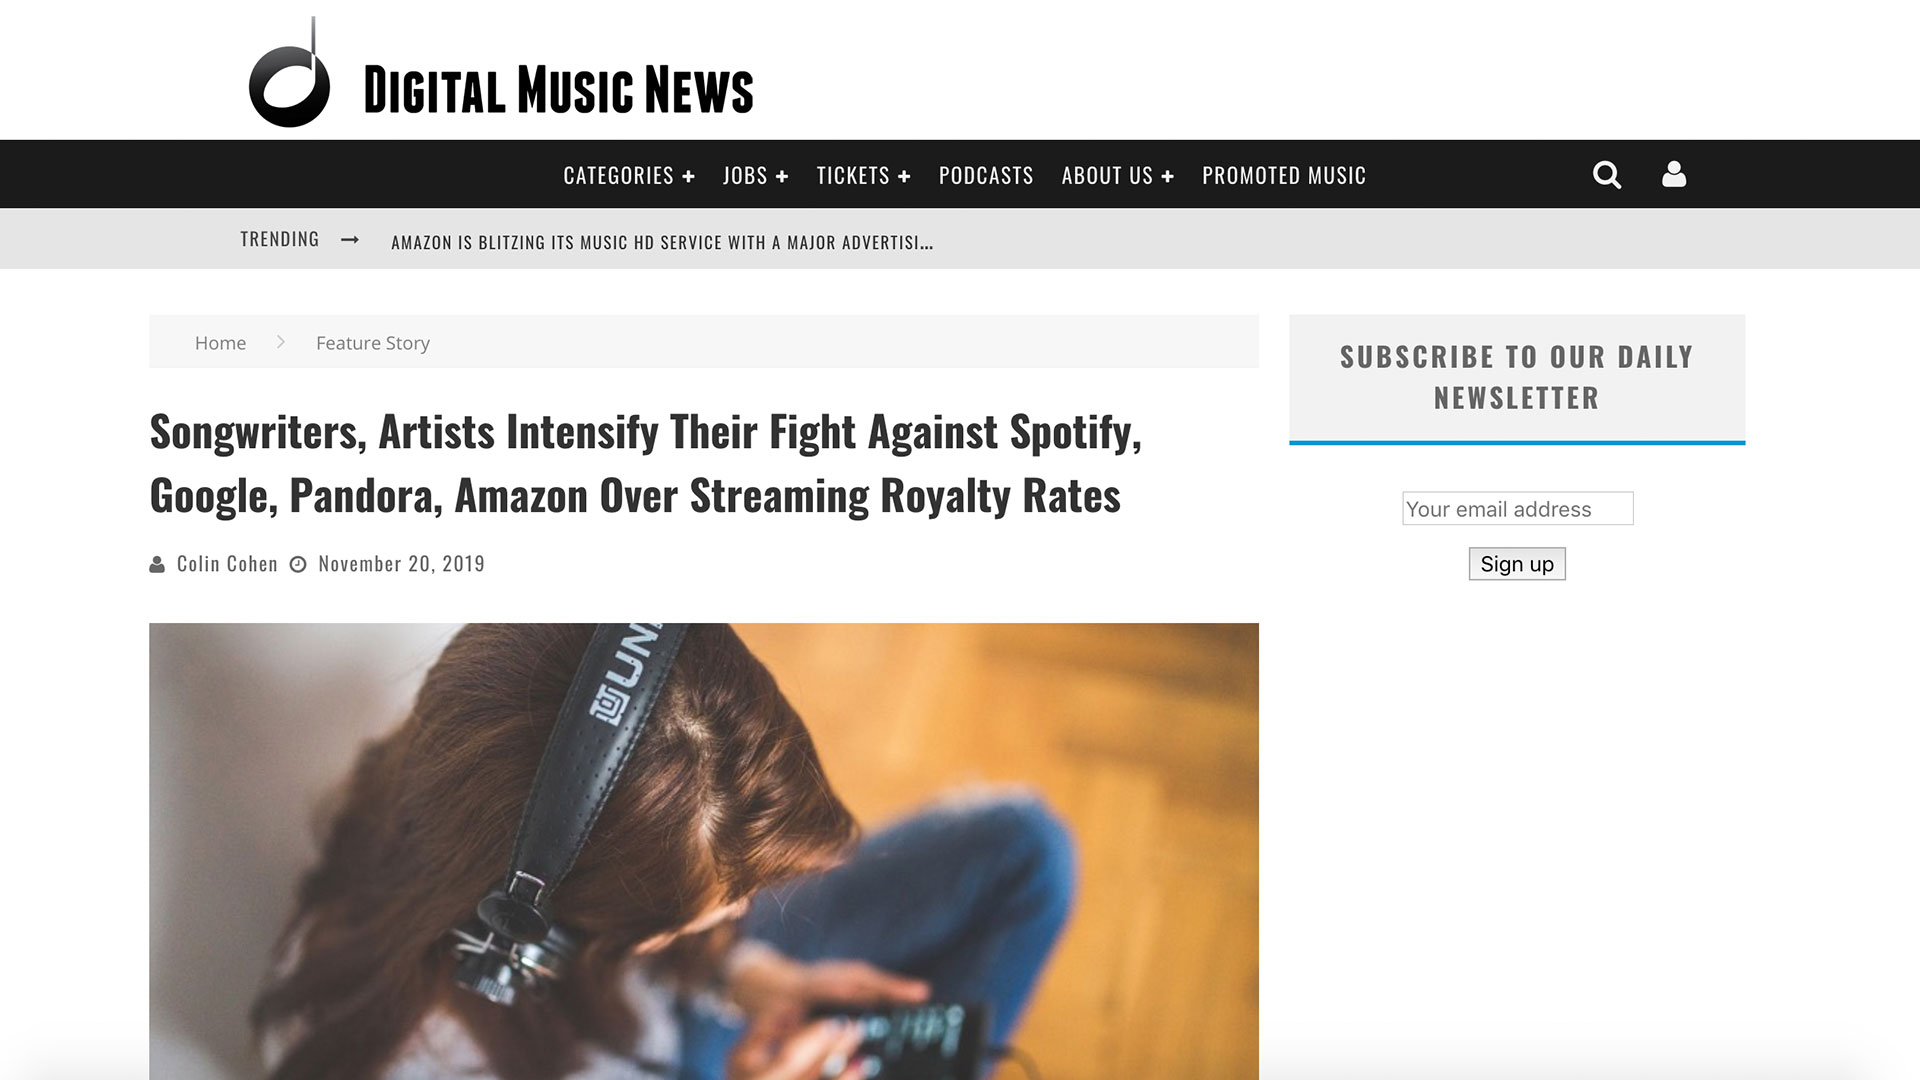 Fairness Rocks News Songwriters, Artists Intensify Their Fight Against Spotify, Google, Pandora, Amazon Over Streaming Royalty Rates